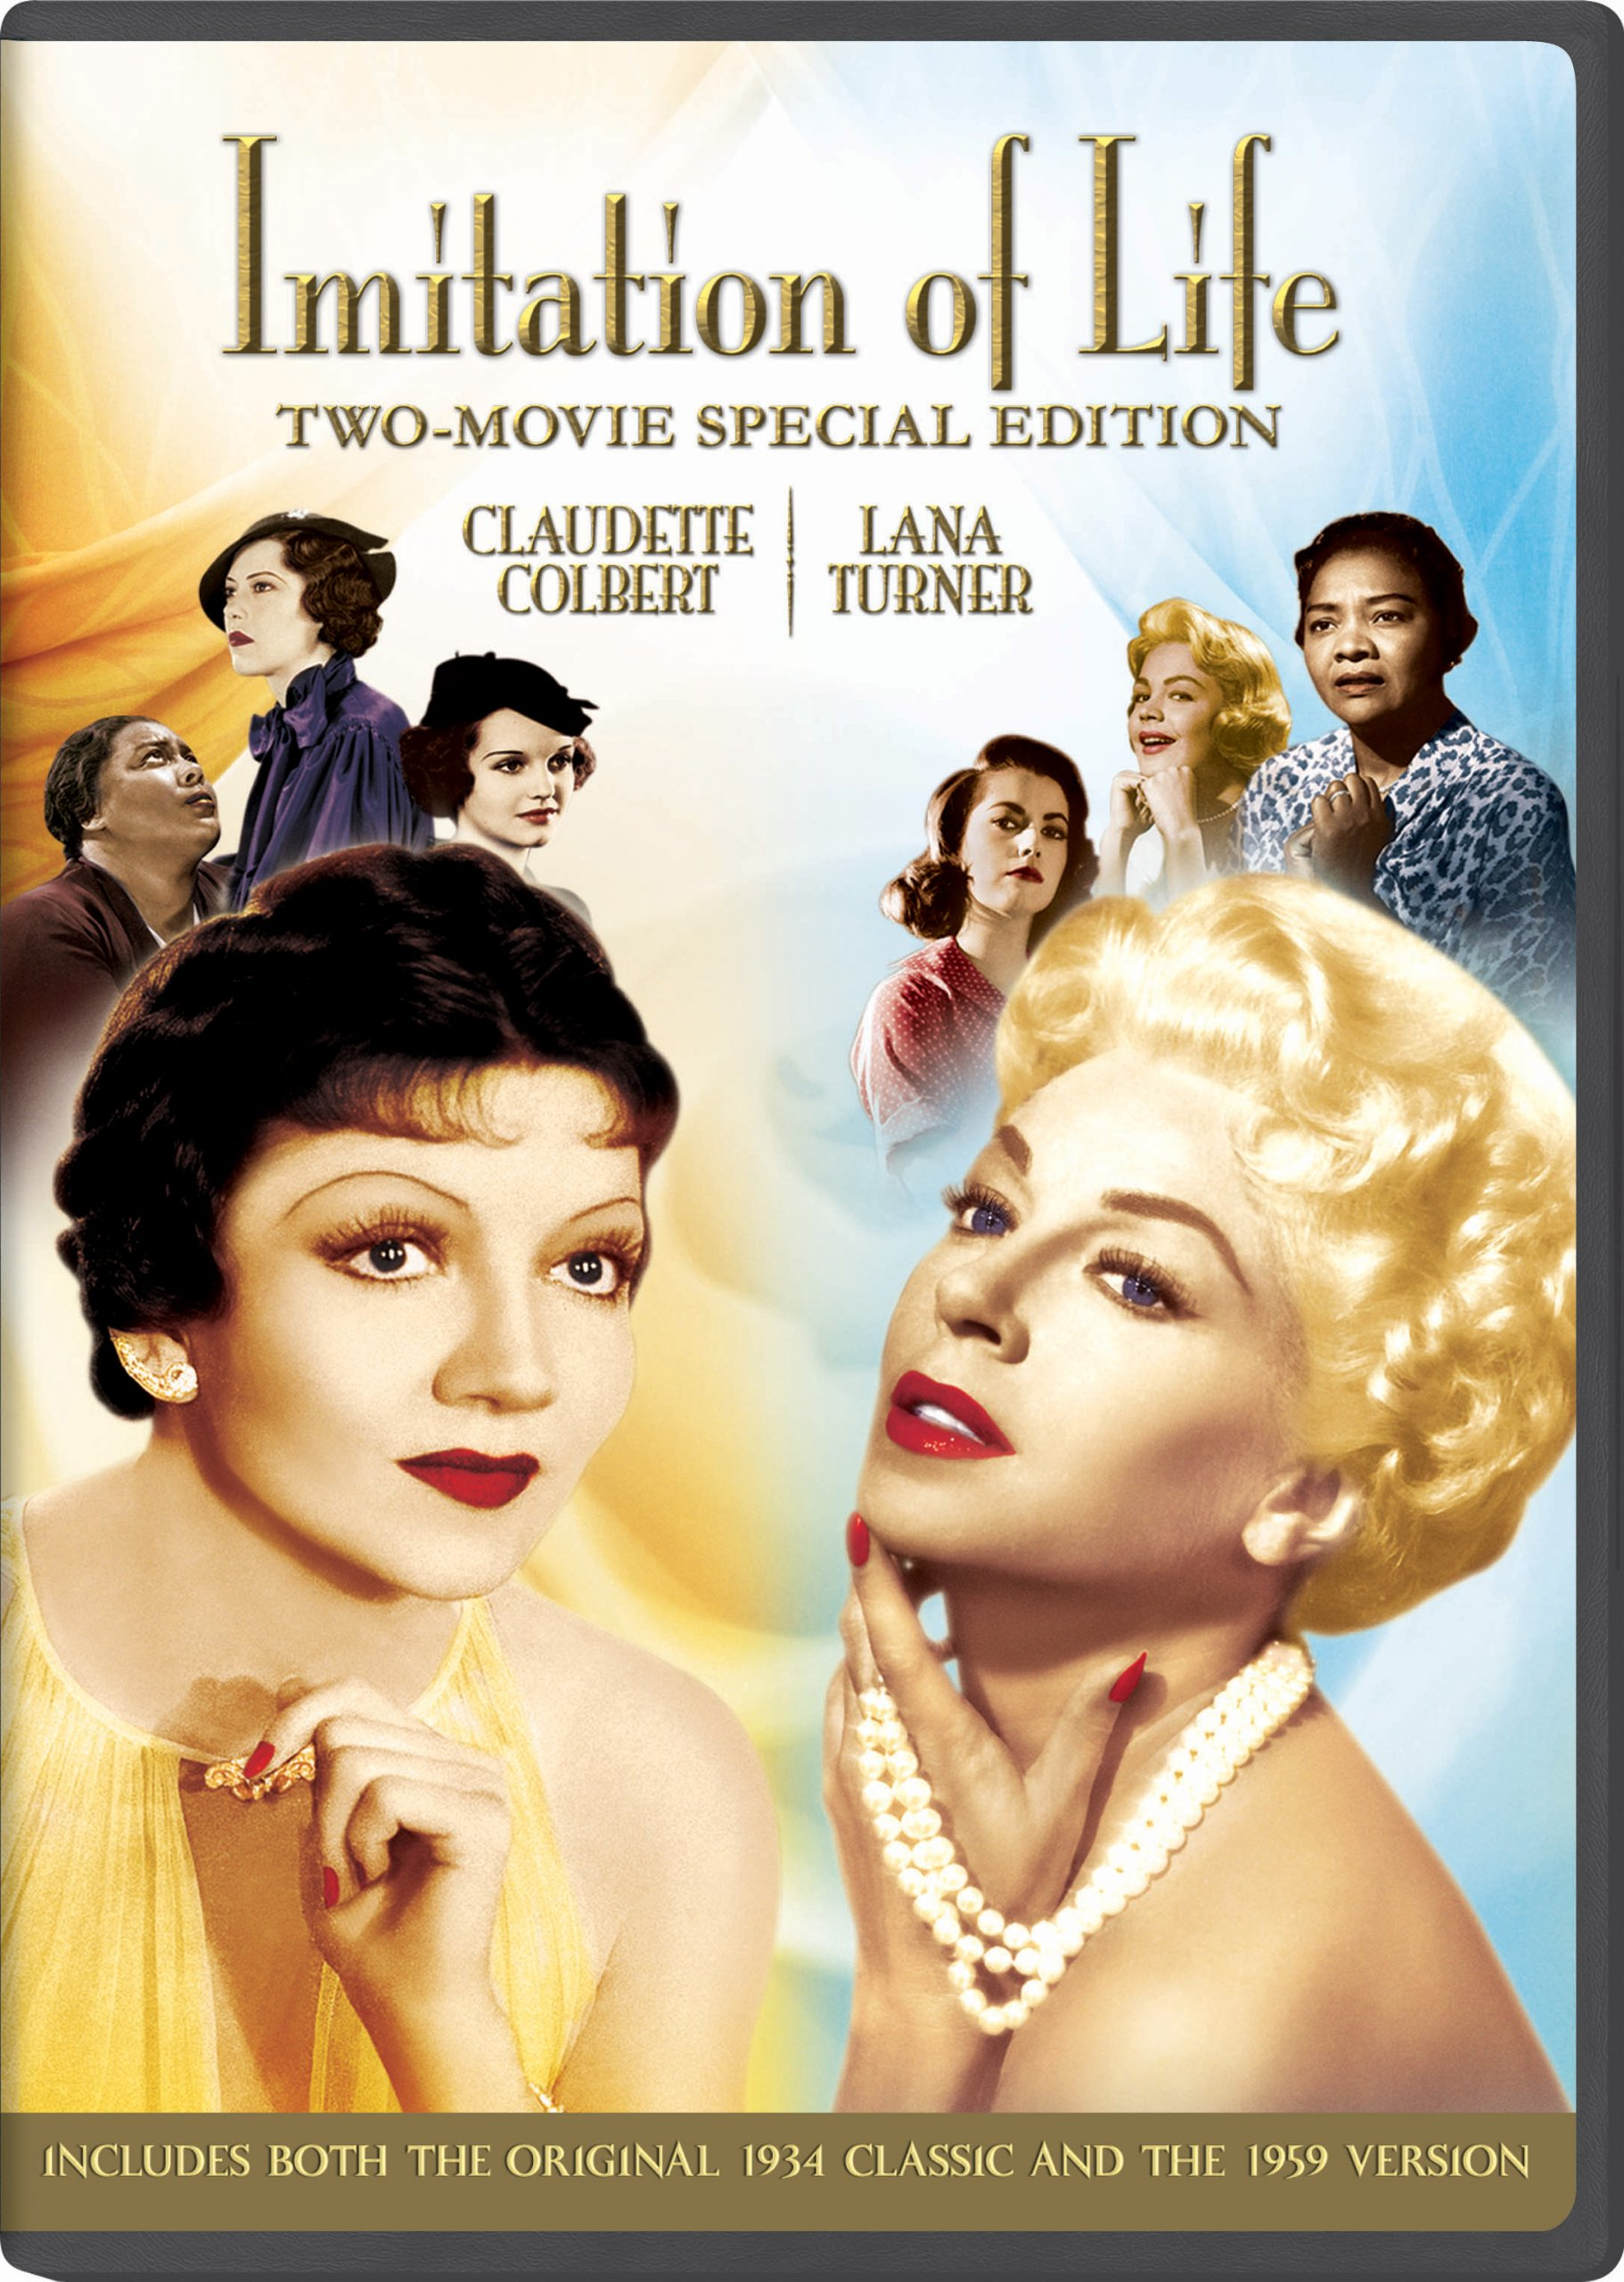 DVD : Imitation of Life (Special Edition, Digital Copy, Slipsleeve Packaging, 2 Disc)